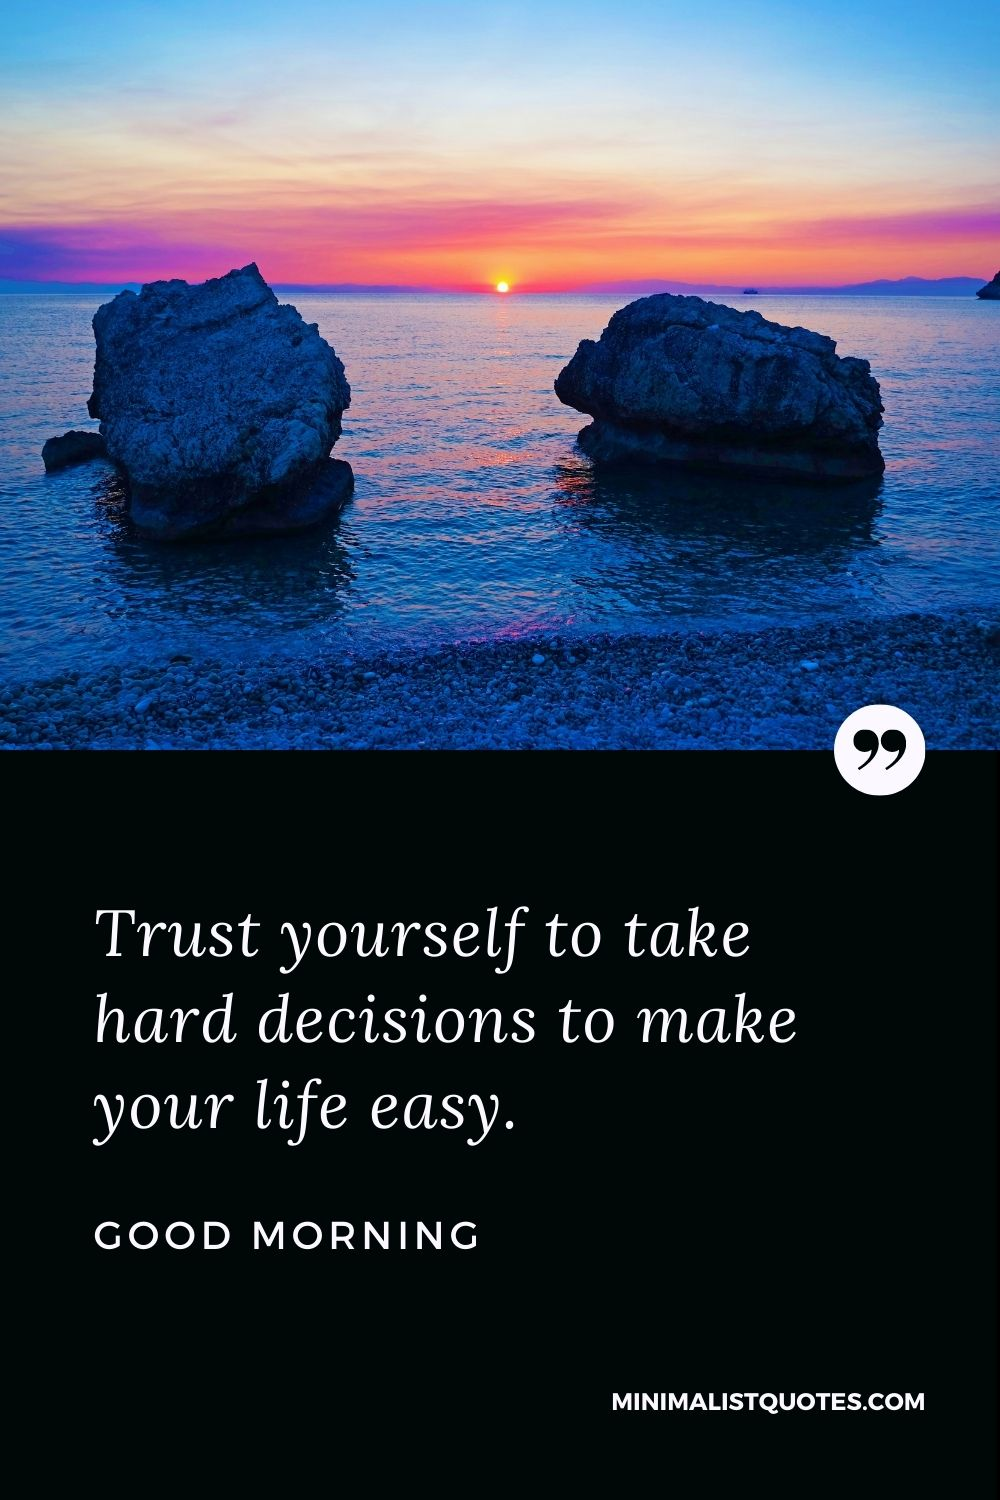 Good Morning Wish & Message With Image: Trust yourself to take hard decisionsto make your life easy.